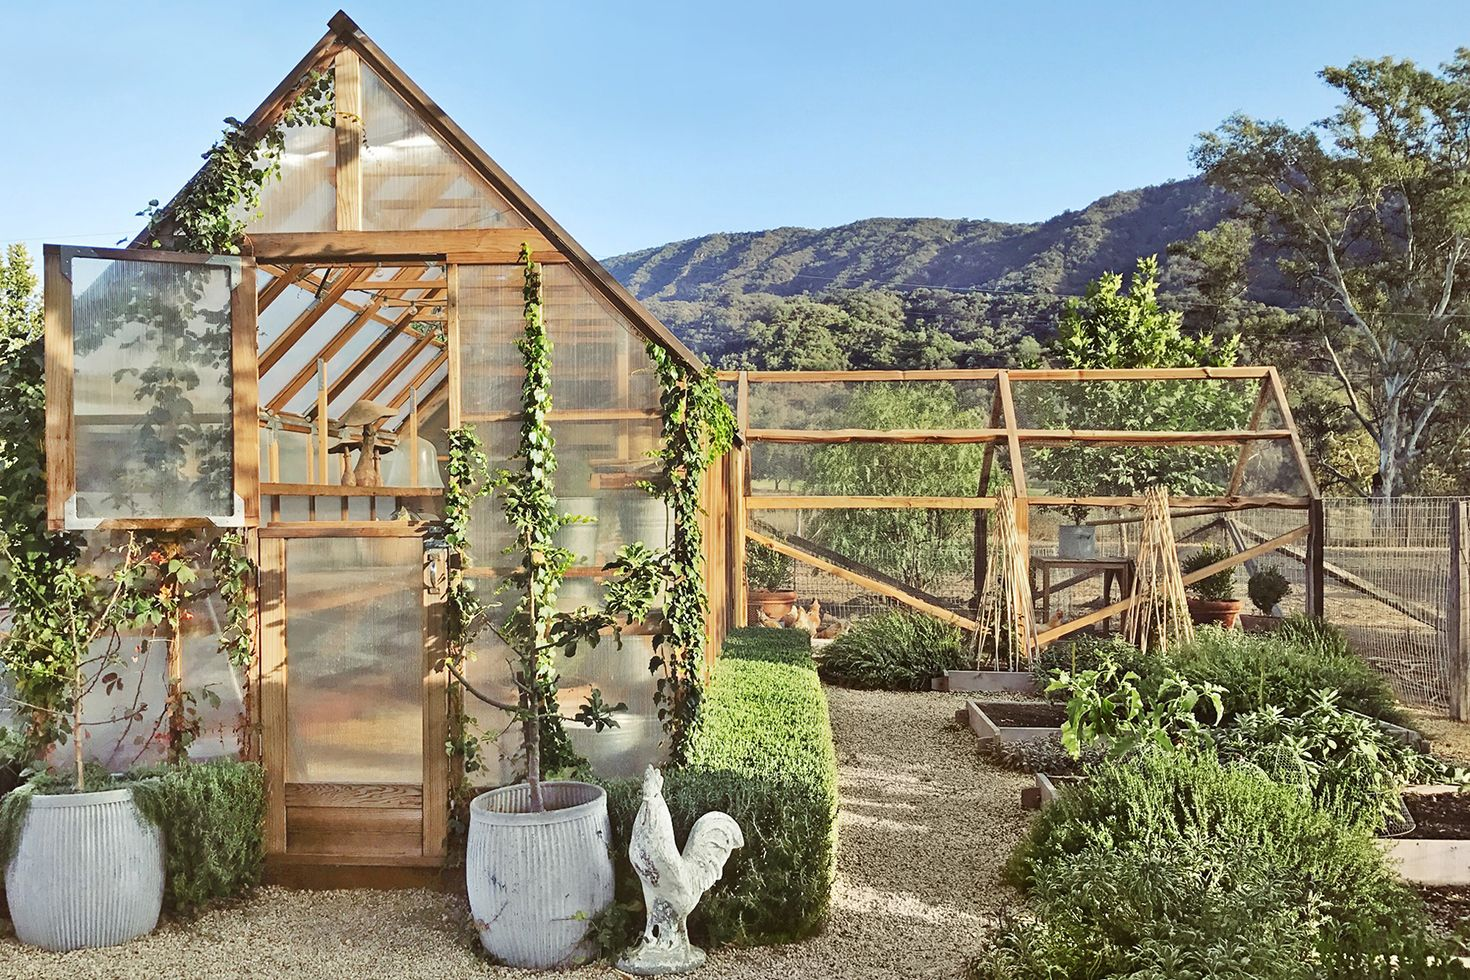 24 Diy Chicken Coops You Need In Your Backyard Coop Plans Know More About Diagram Of A Plant Cell Front Yard Landscaping Ideas